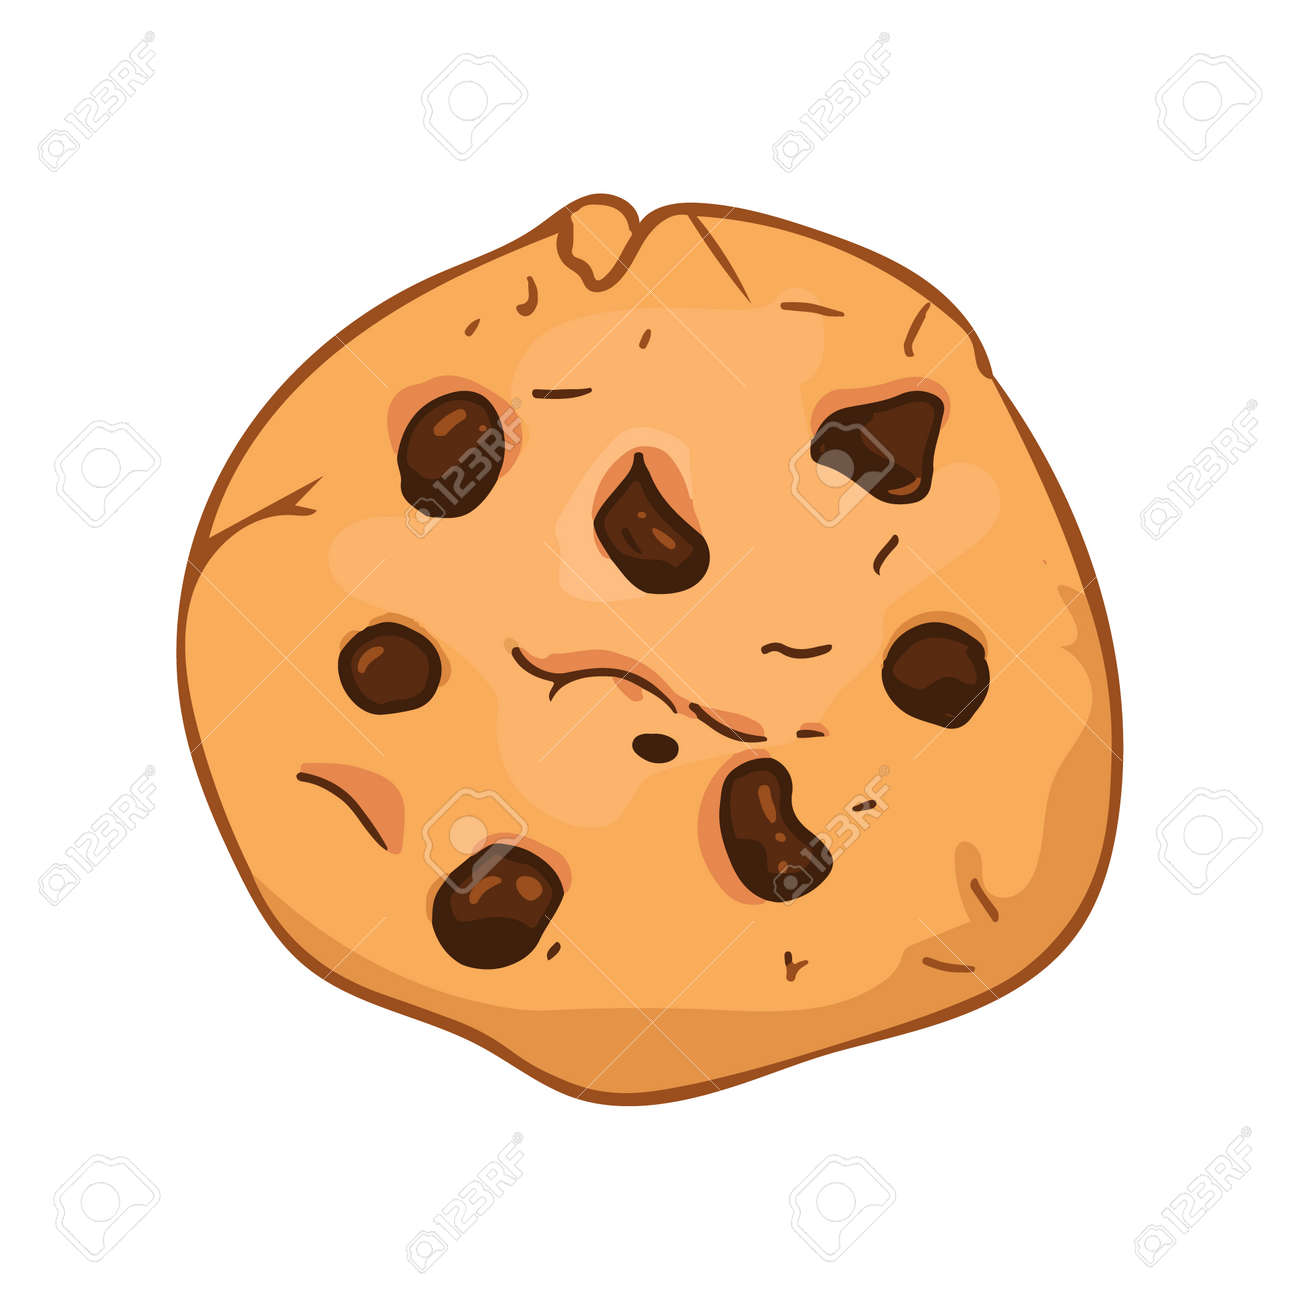 Chocolate chip cookie in cartoon style. Vector illustration - 168154799